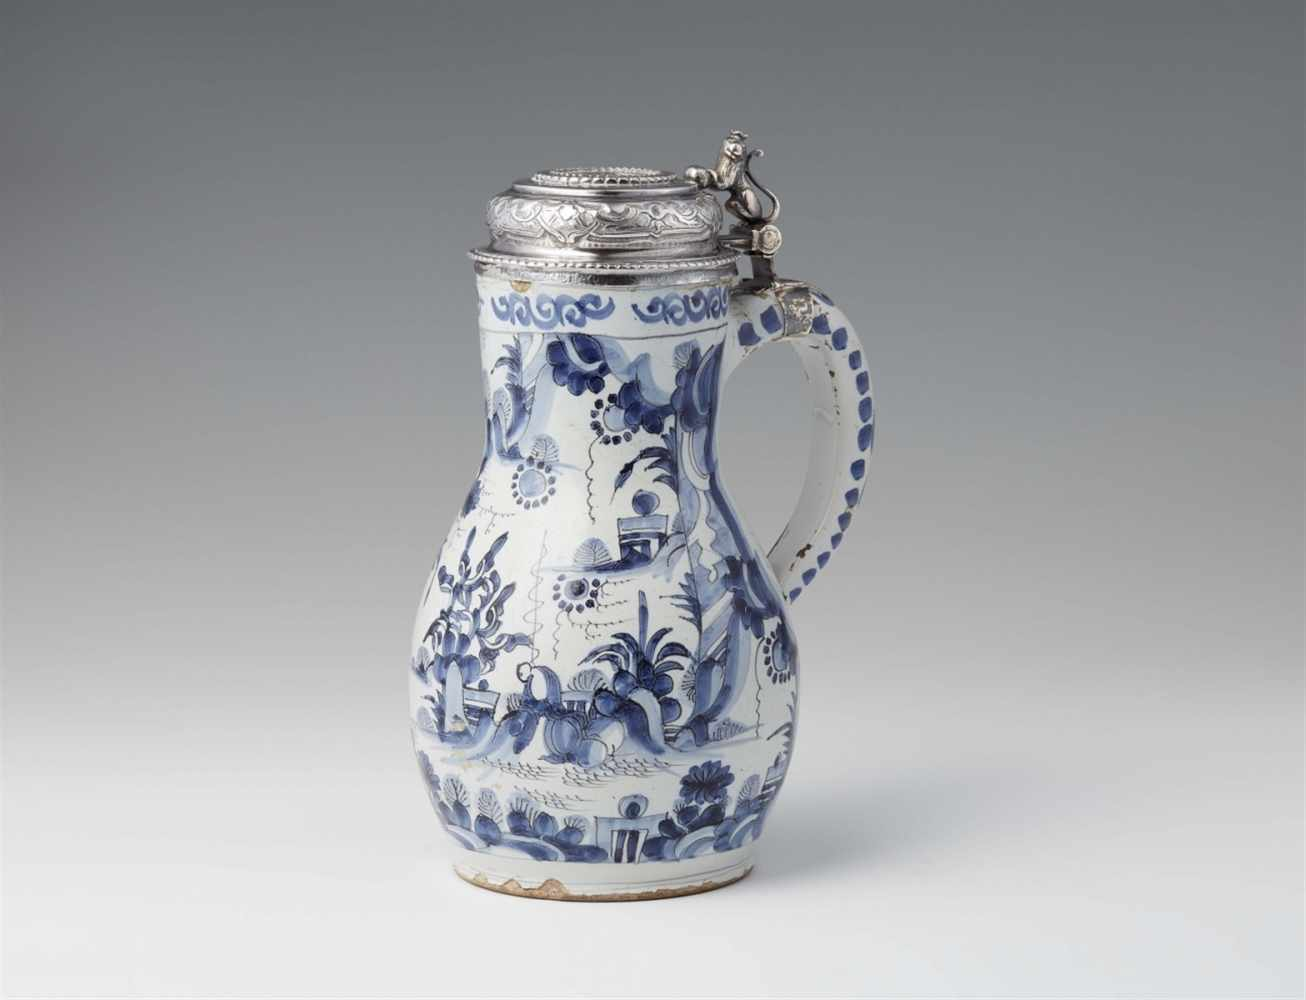 Lot 346 - A Delftware pitcher with Danish silver mountingsPear-form faience jug with blue and white